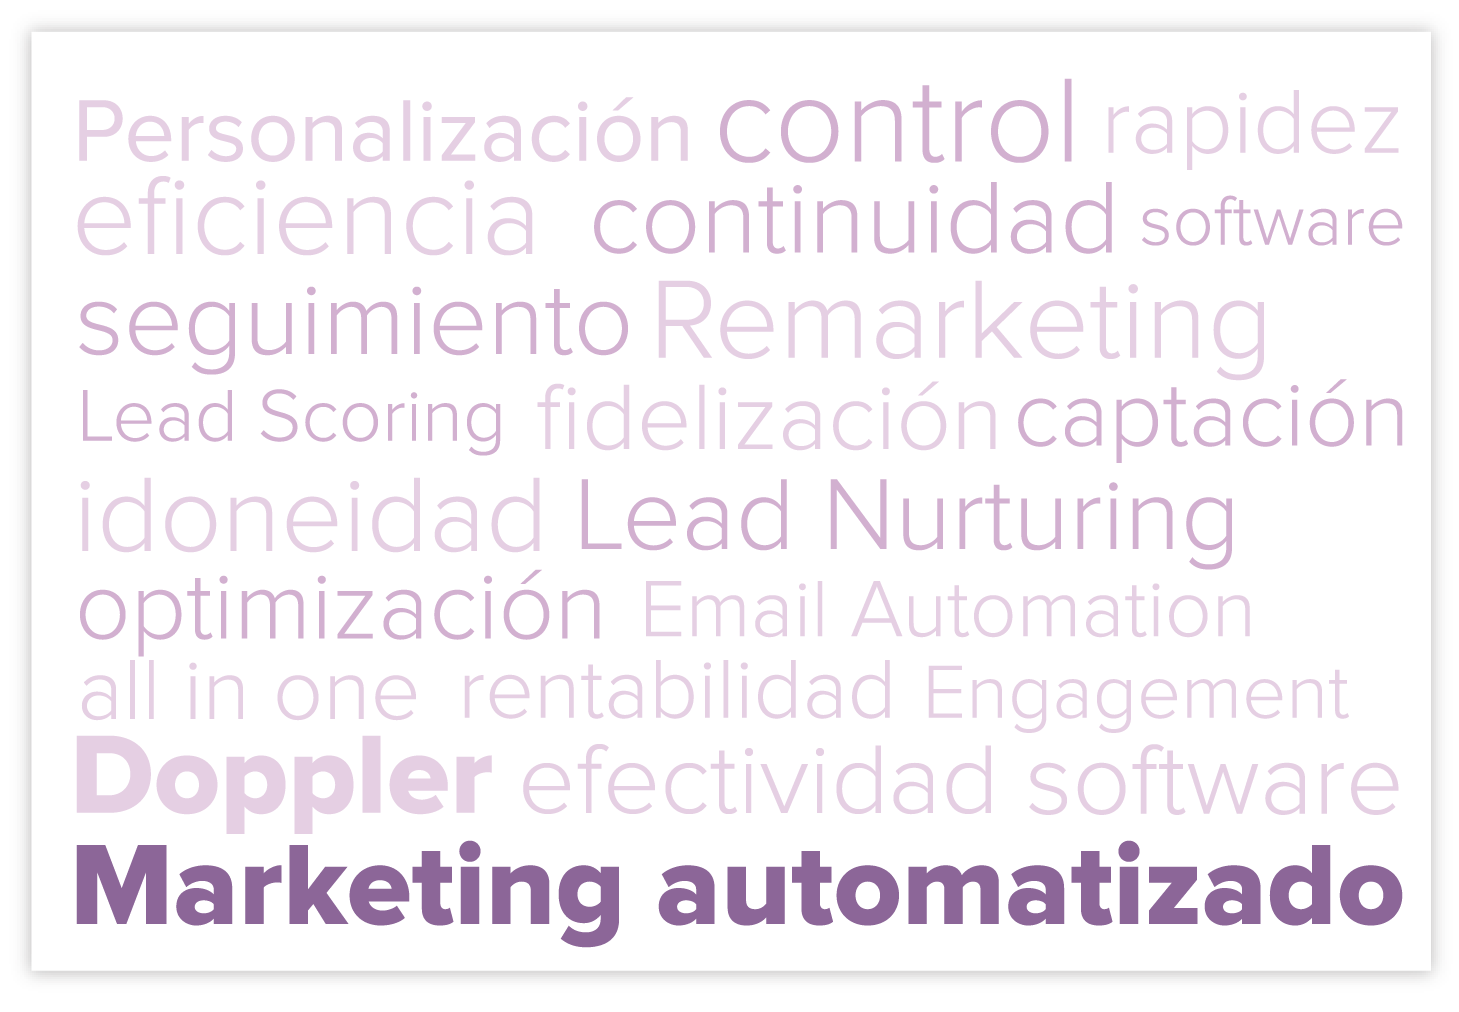 marketing automatizado nube de tags